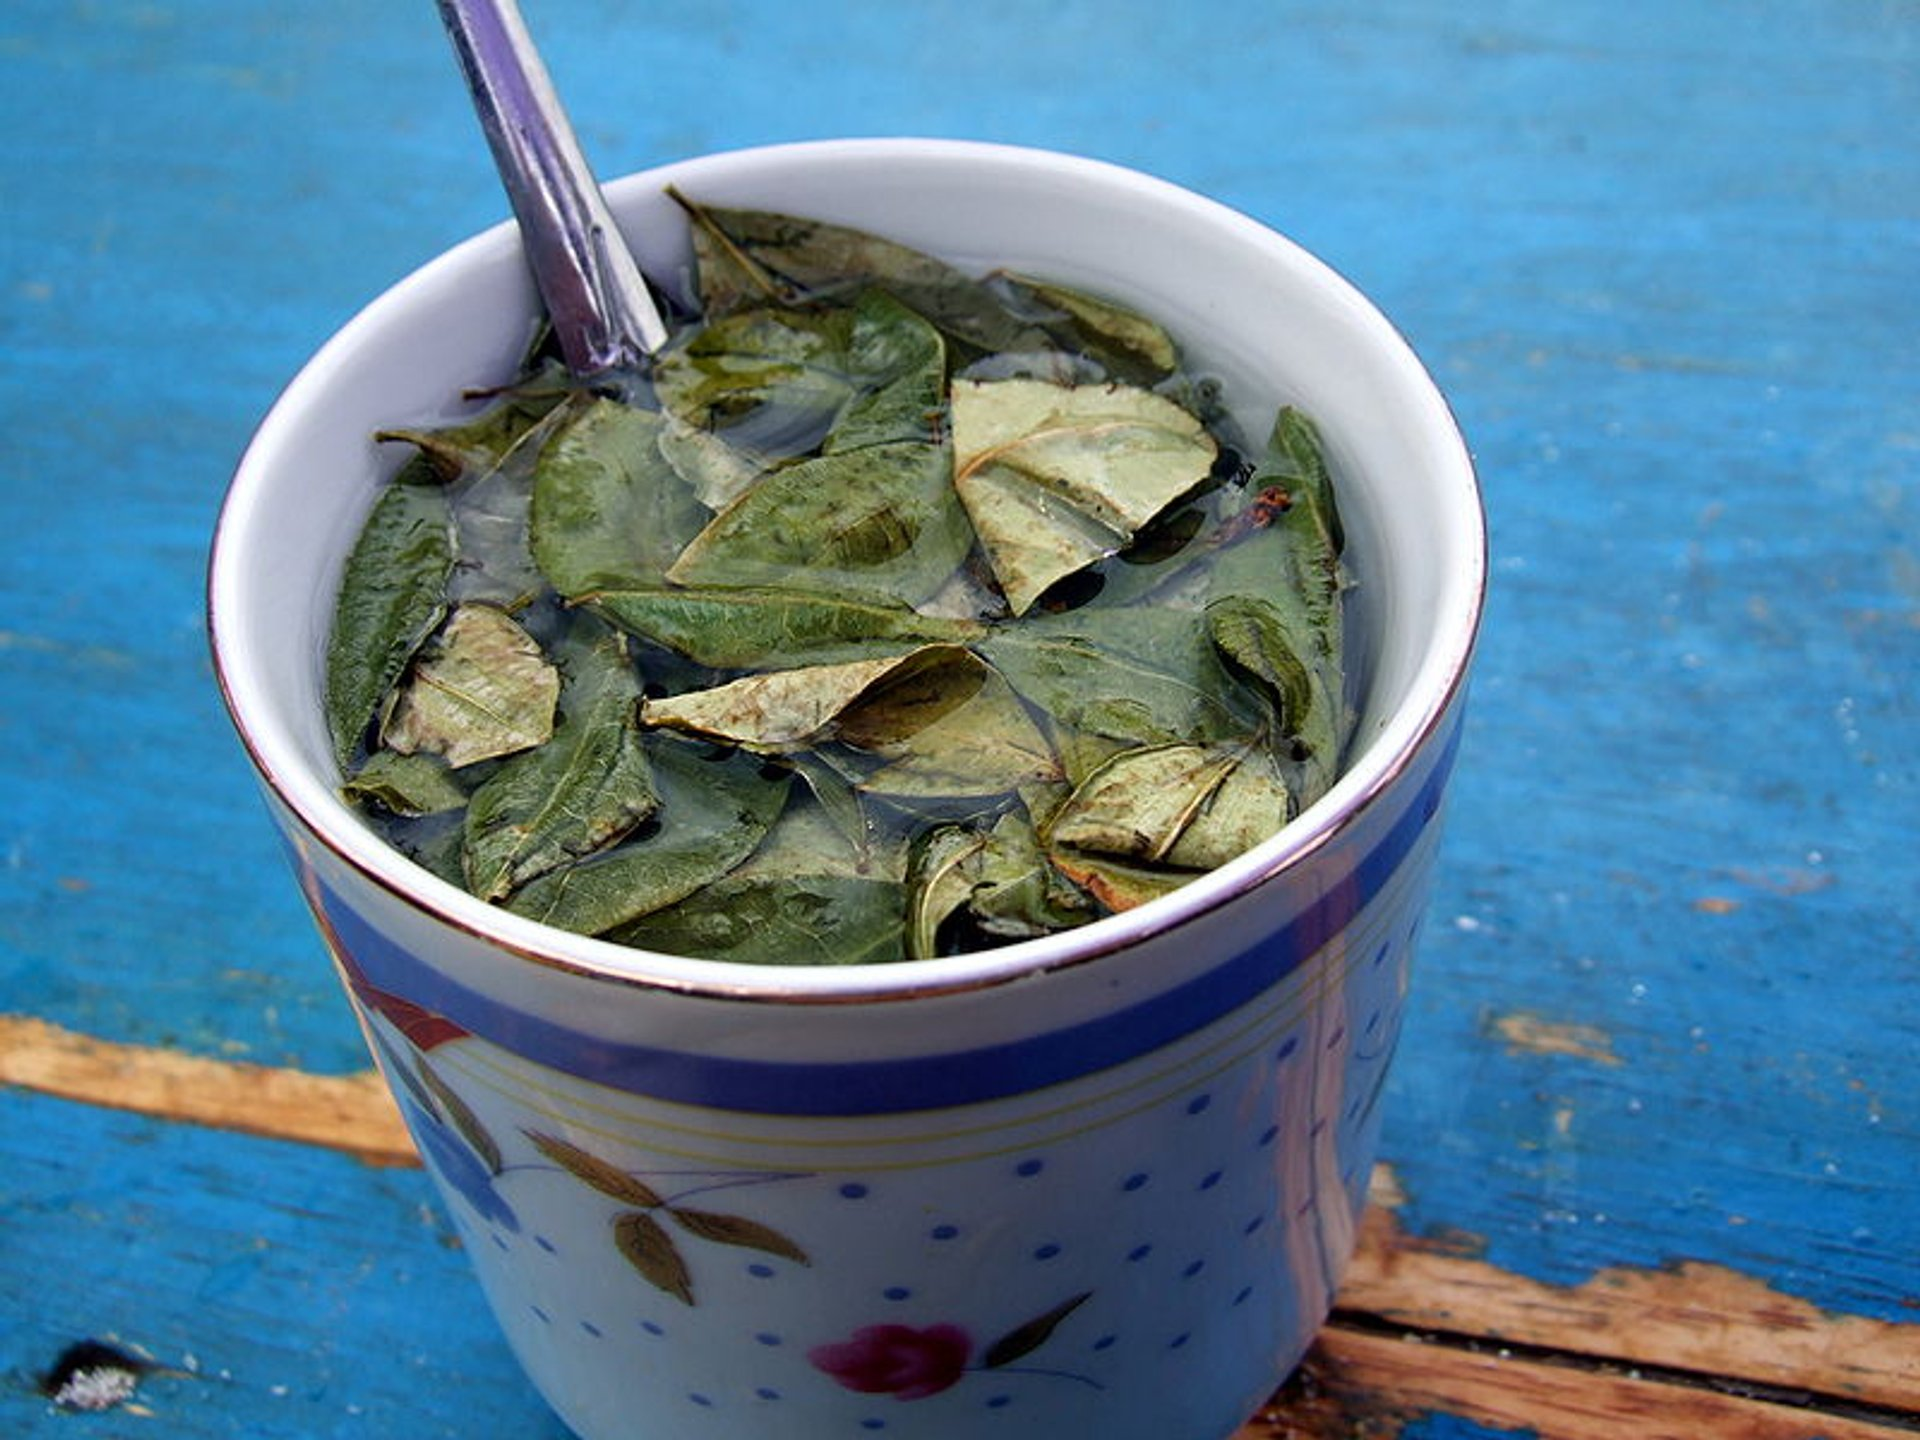 Coca Leaves Harvest in Bolivia 2020 - Best Time